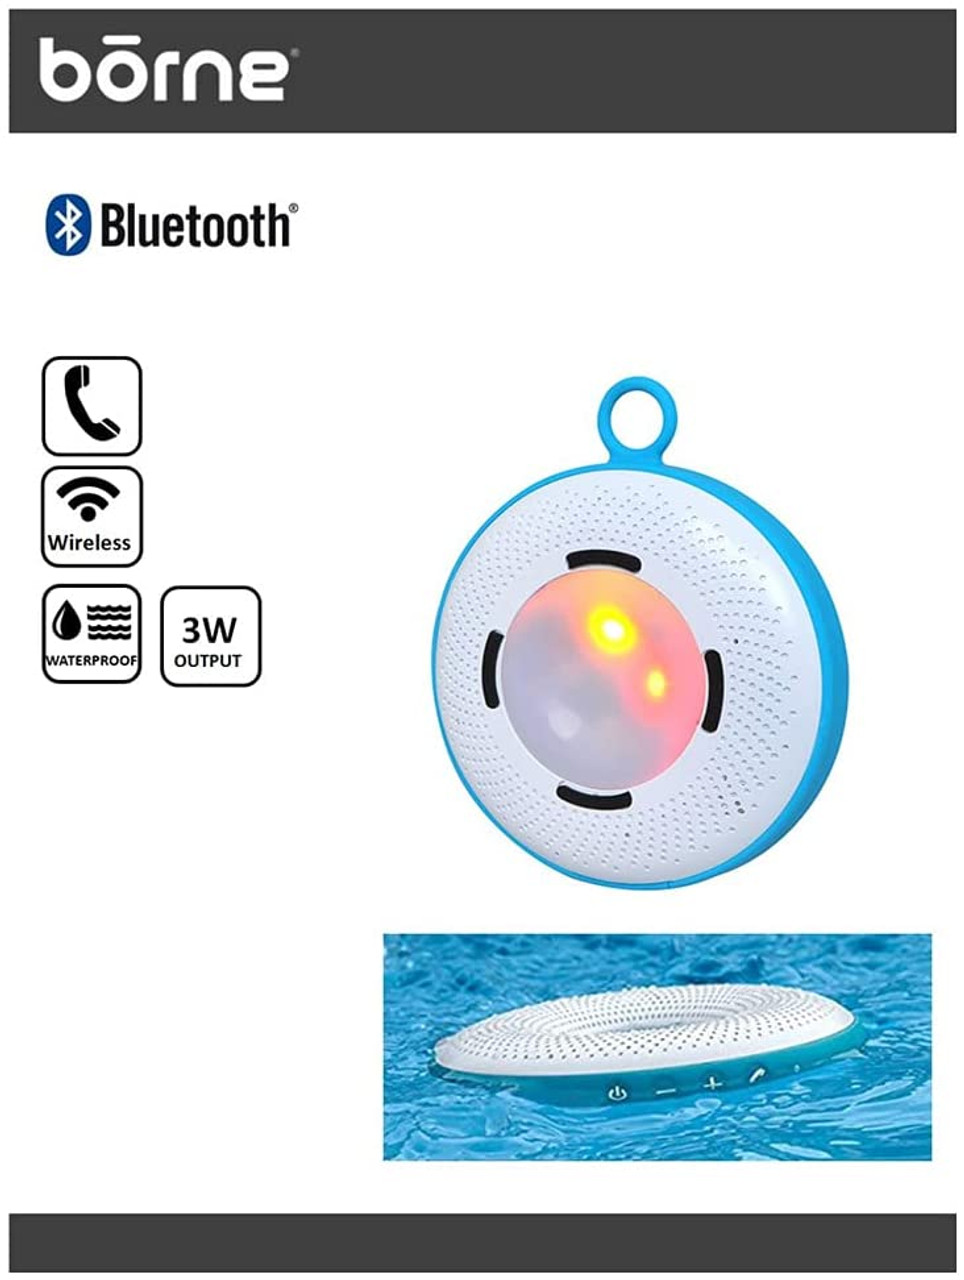 Borne BTSPK45 Waterproof Bluetooth Speaker with LED Party Lights that Floats